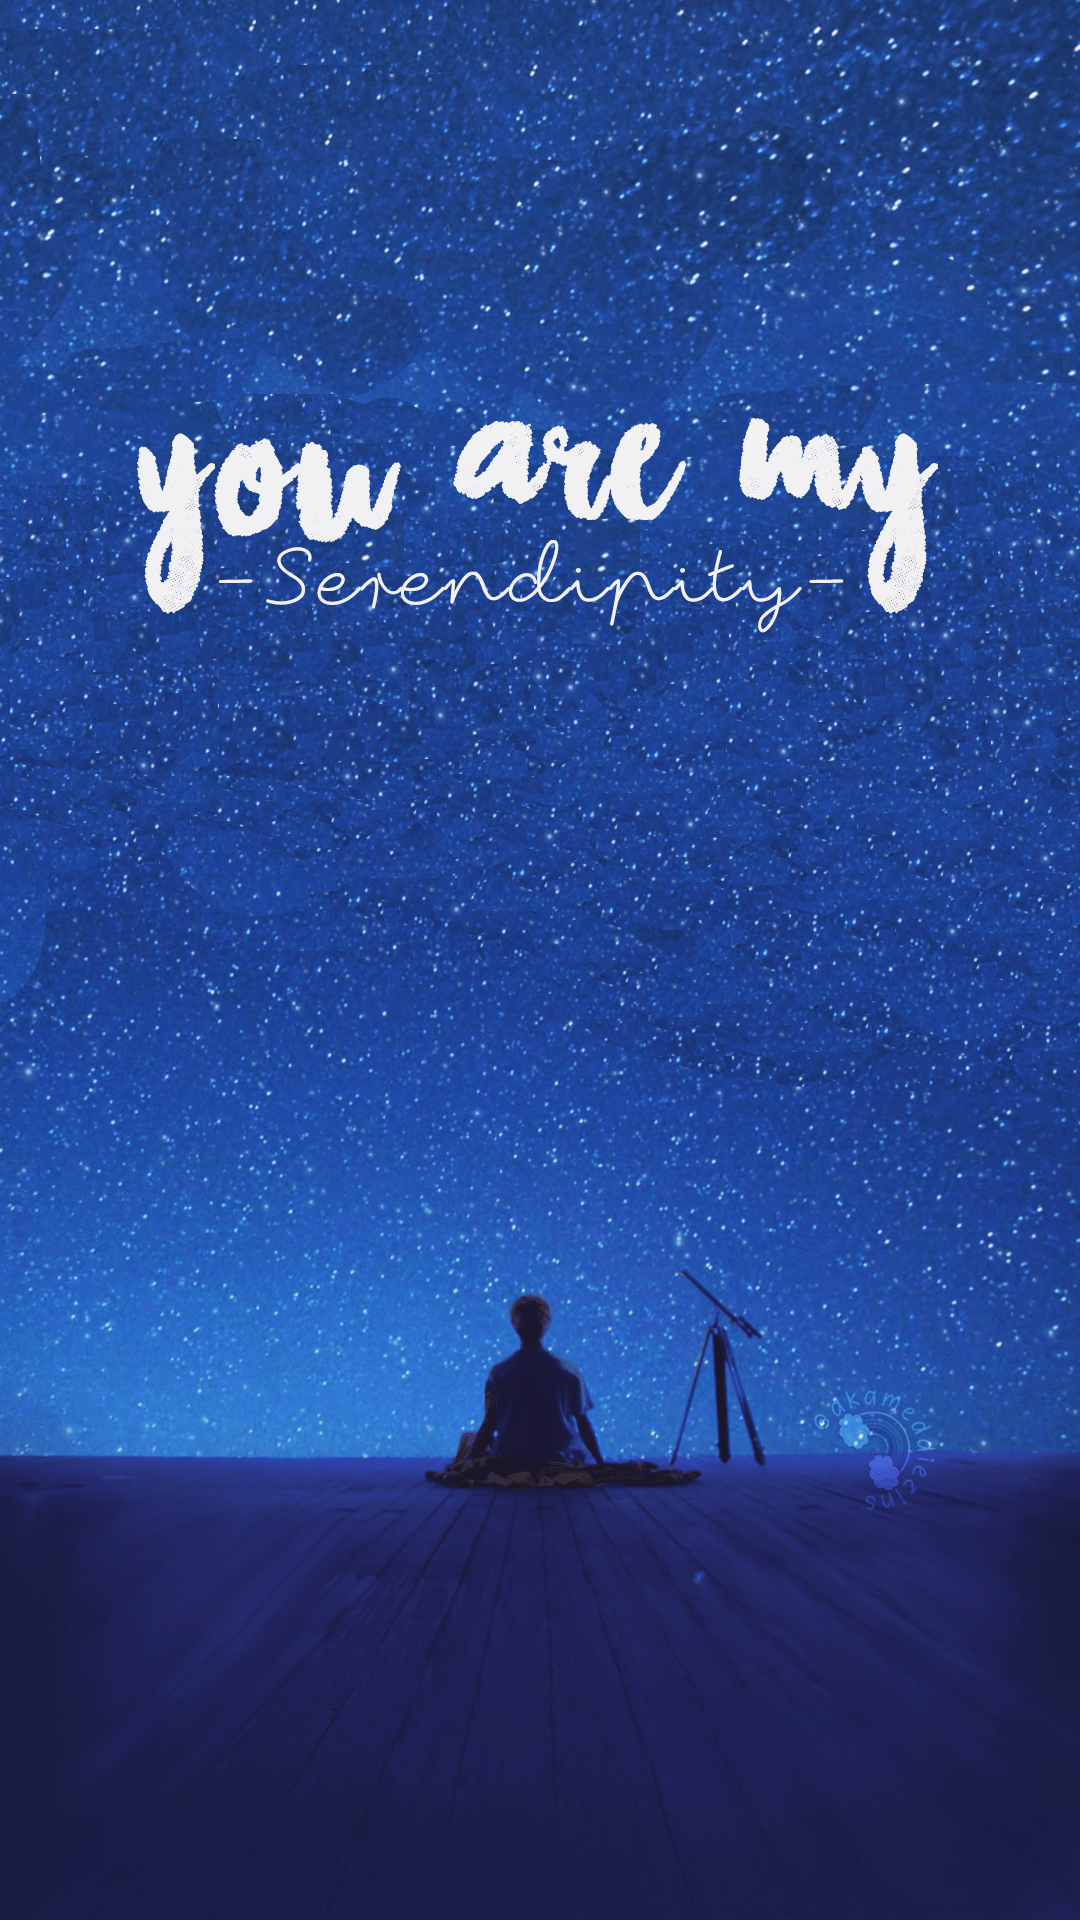 Love Yourself Wallpapers - Wallpaper Cave